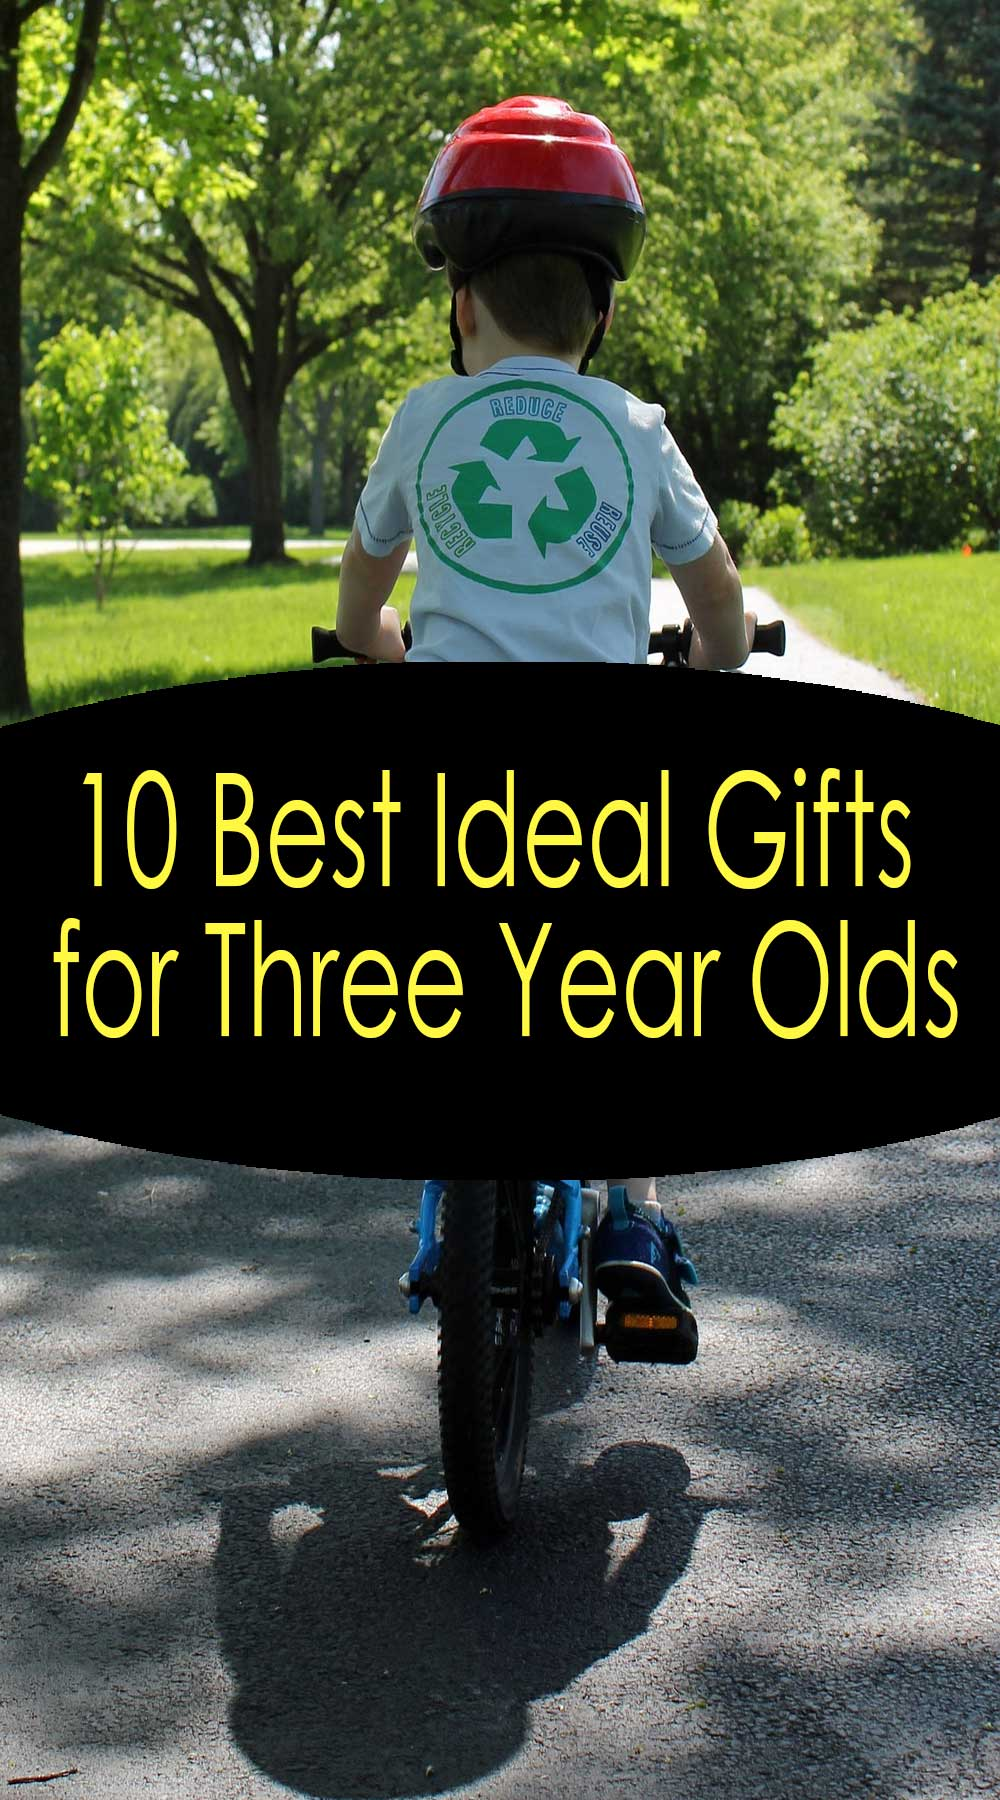 10 Best Ideal Gifts for Three Year Olds